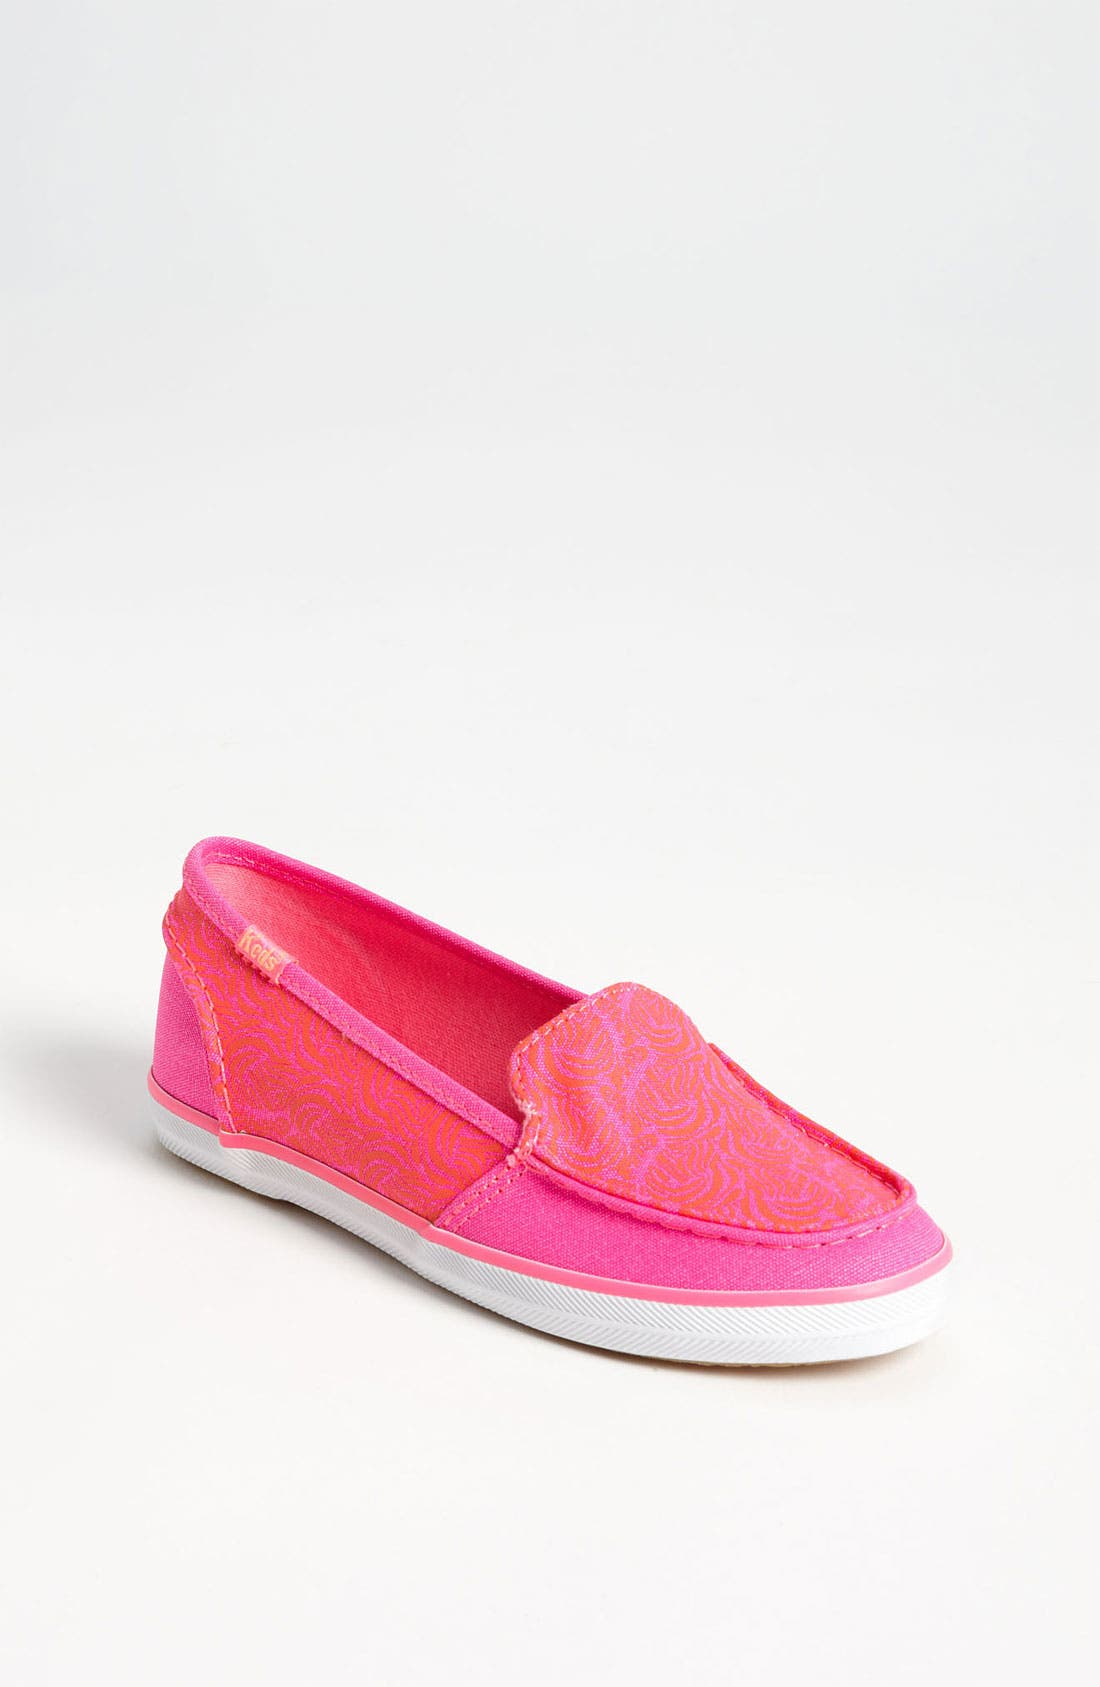 Alternate Image 1 Selected - Keds® 'Surfer' Slip-On (Toddler, Little Kid & Big Kid)